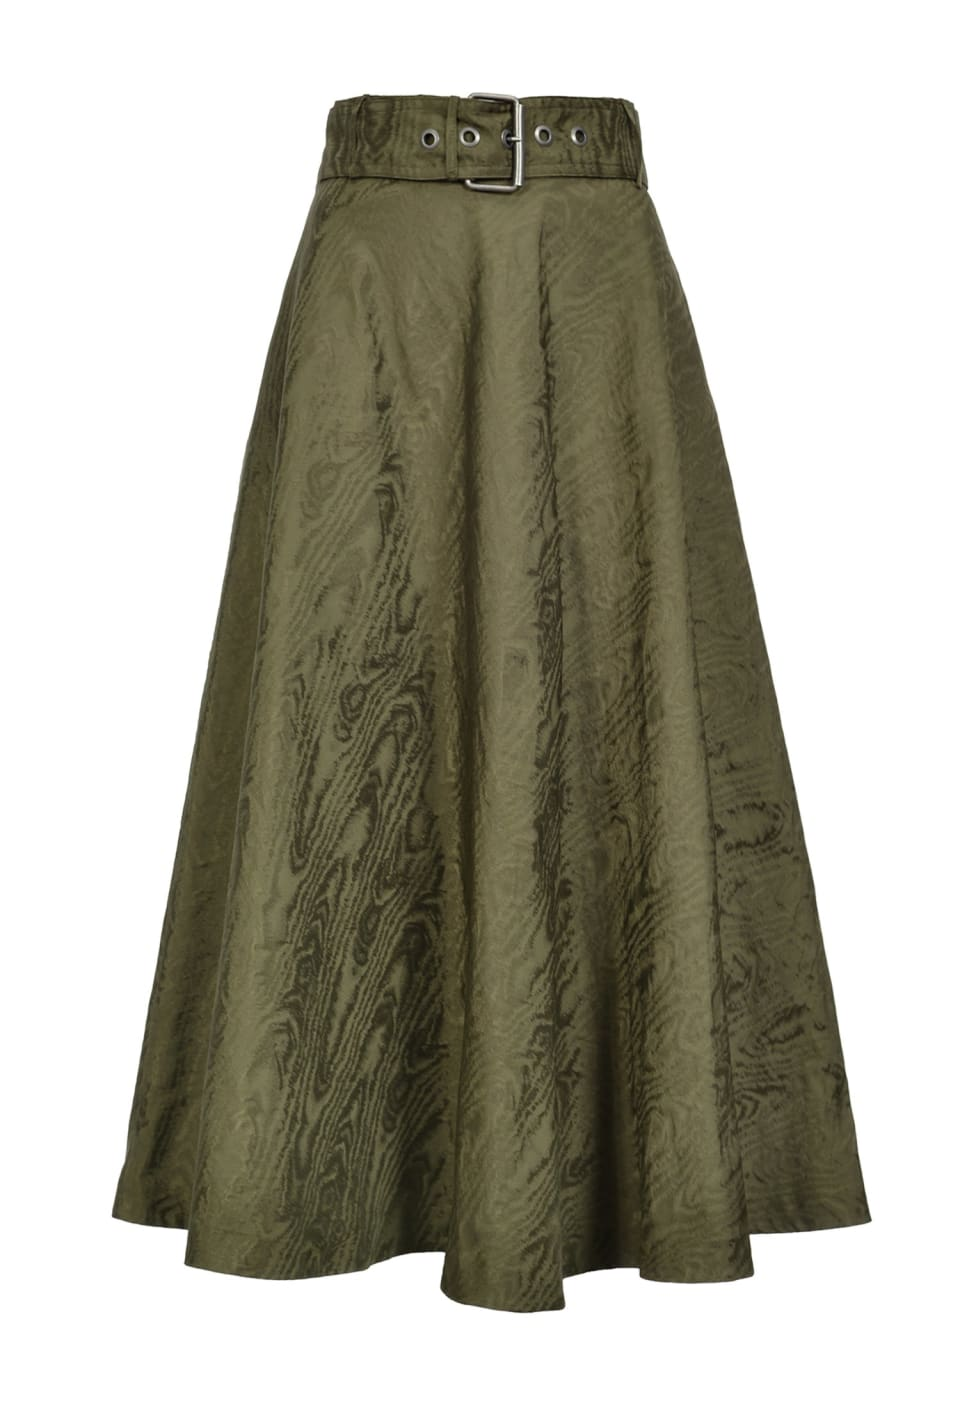 Skirt in moiré taffeta